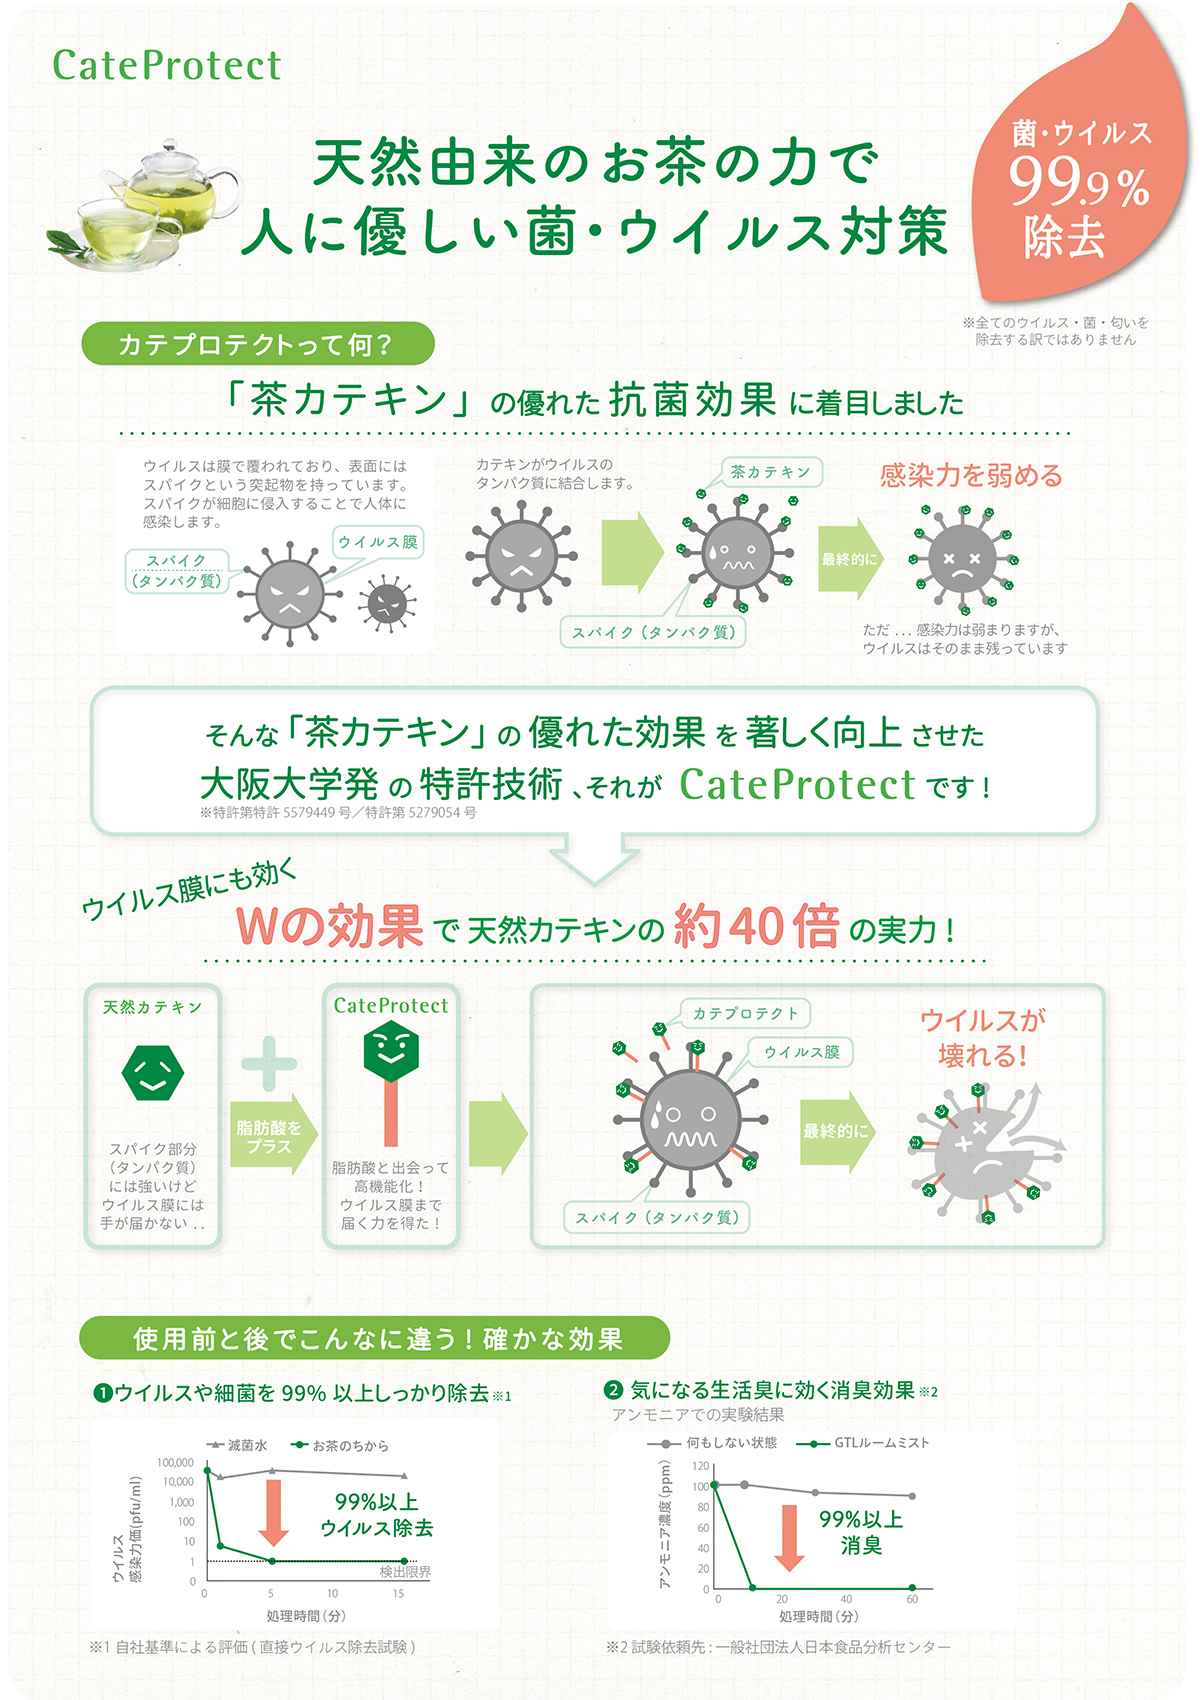 cateprotectいいところ